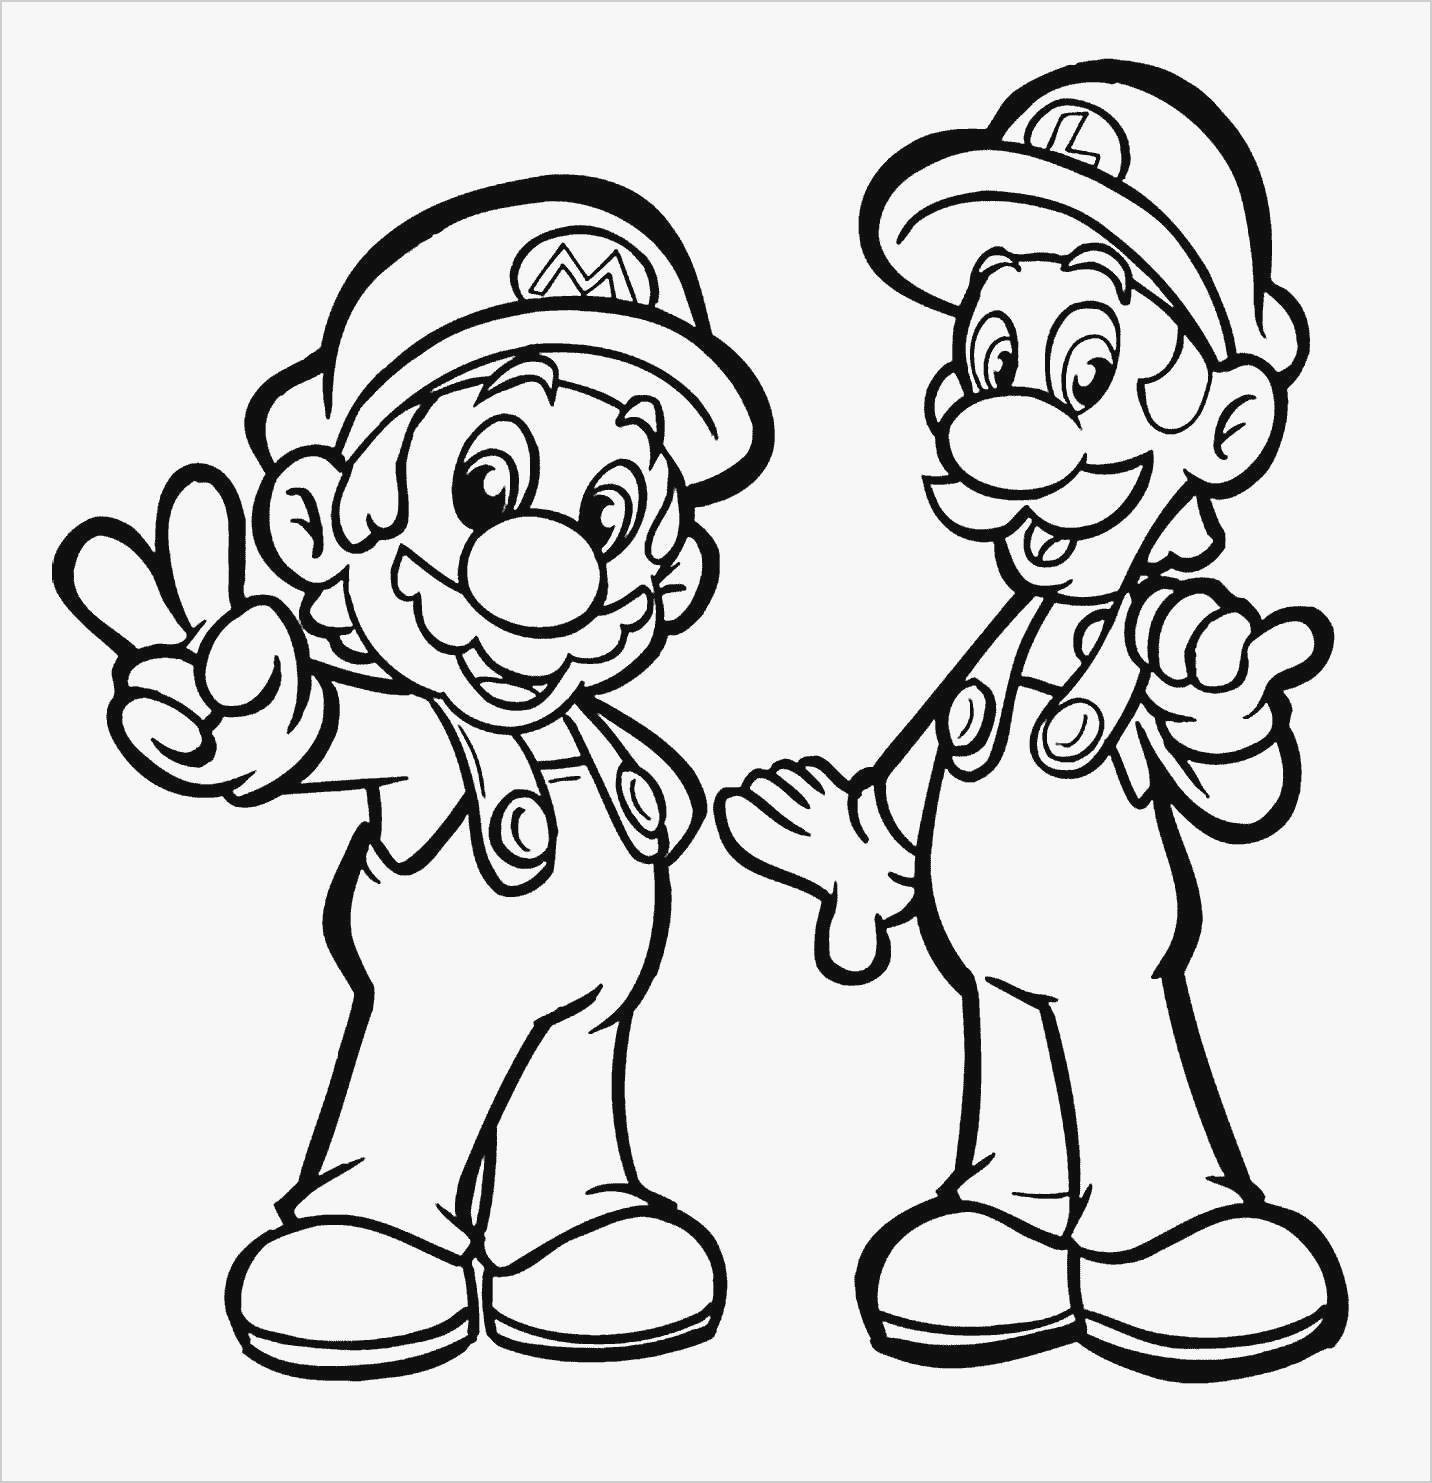 Peach From Mario Coloring Pages Princess Peach Coloring Pages Jvzooreview